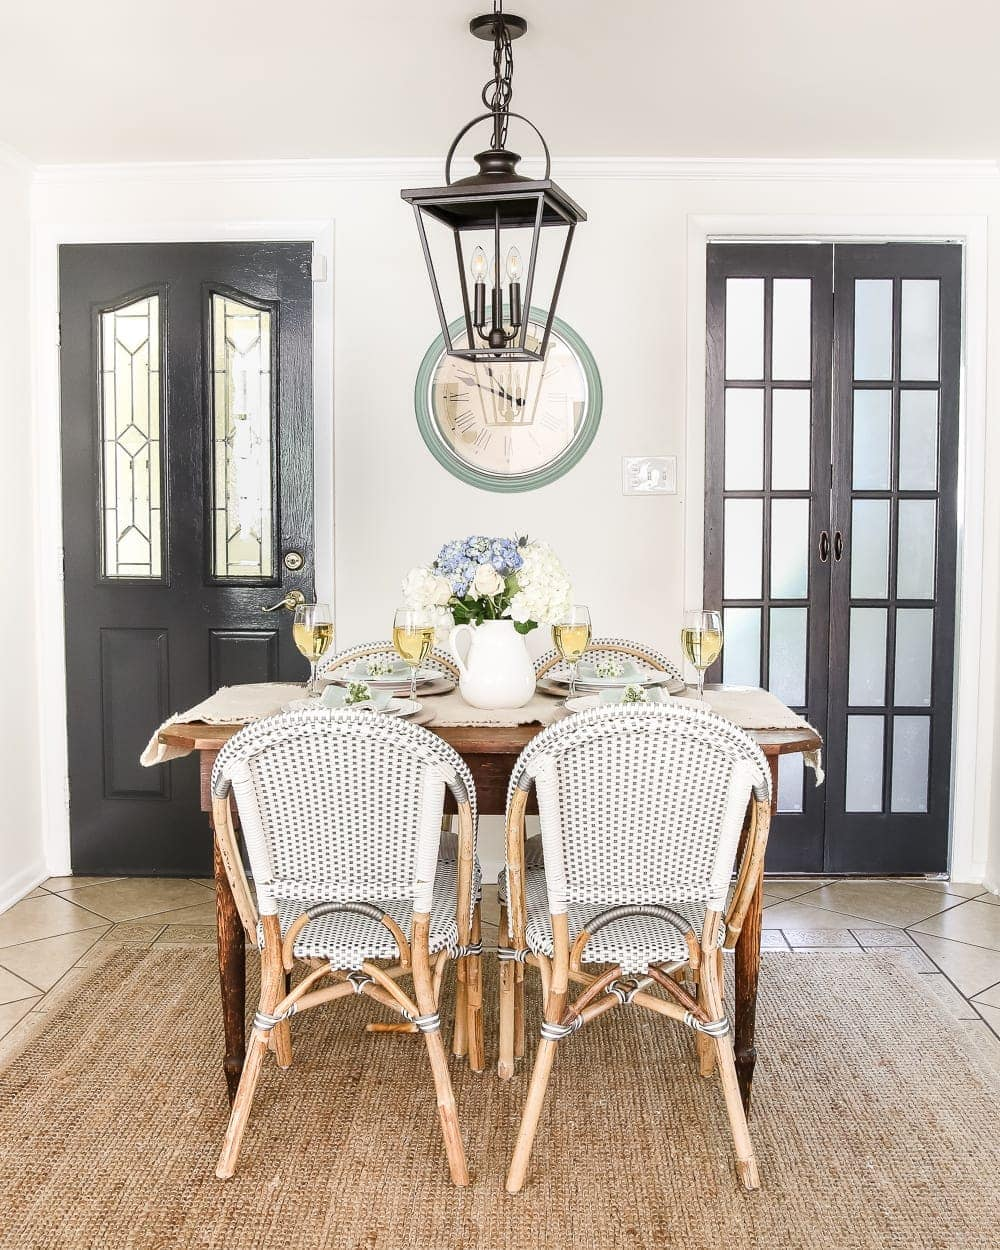 Laundry Room Updates: French Bifold Door   blesserhouse.com - A rickity laundry room bifold door gets a beautiful and functional update with a French bifold door with frosted glass for hiding messes in a stylish way.